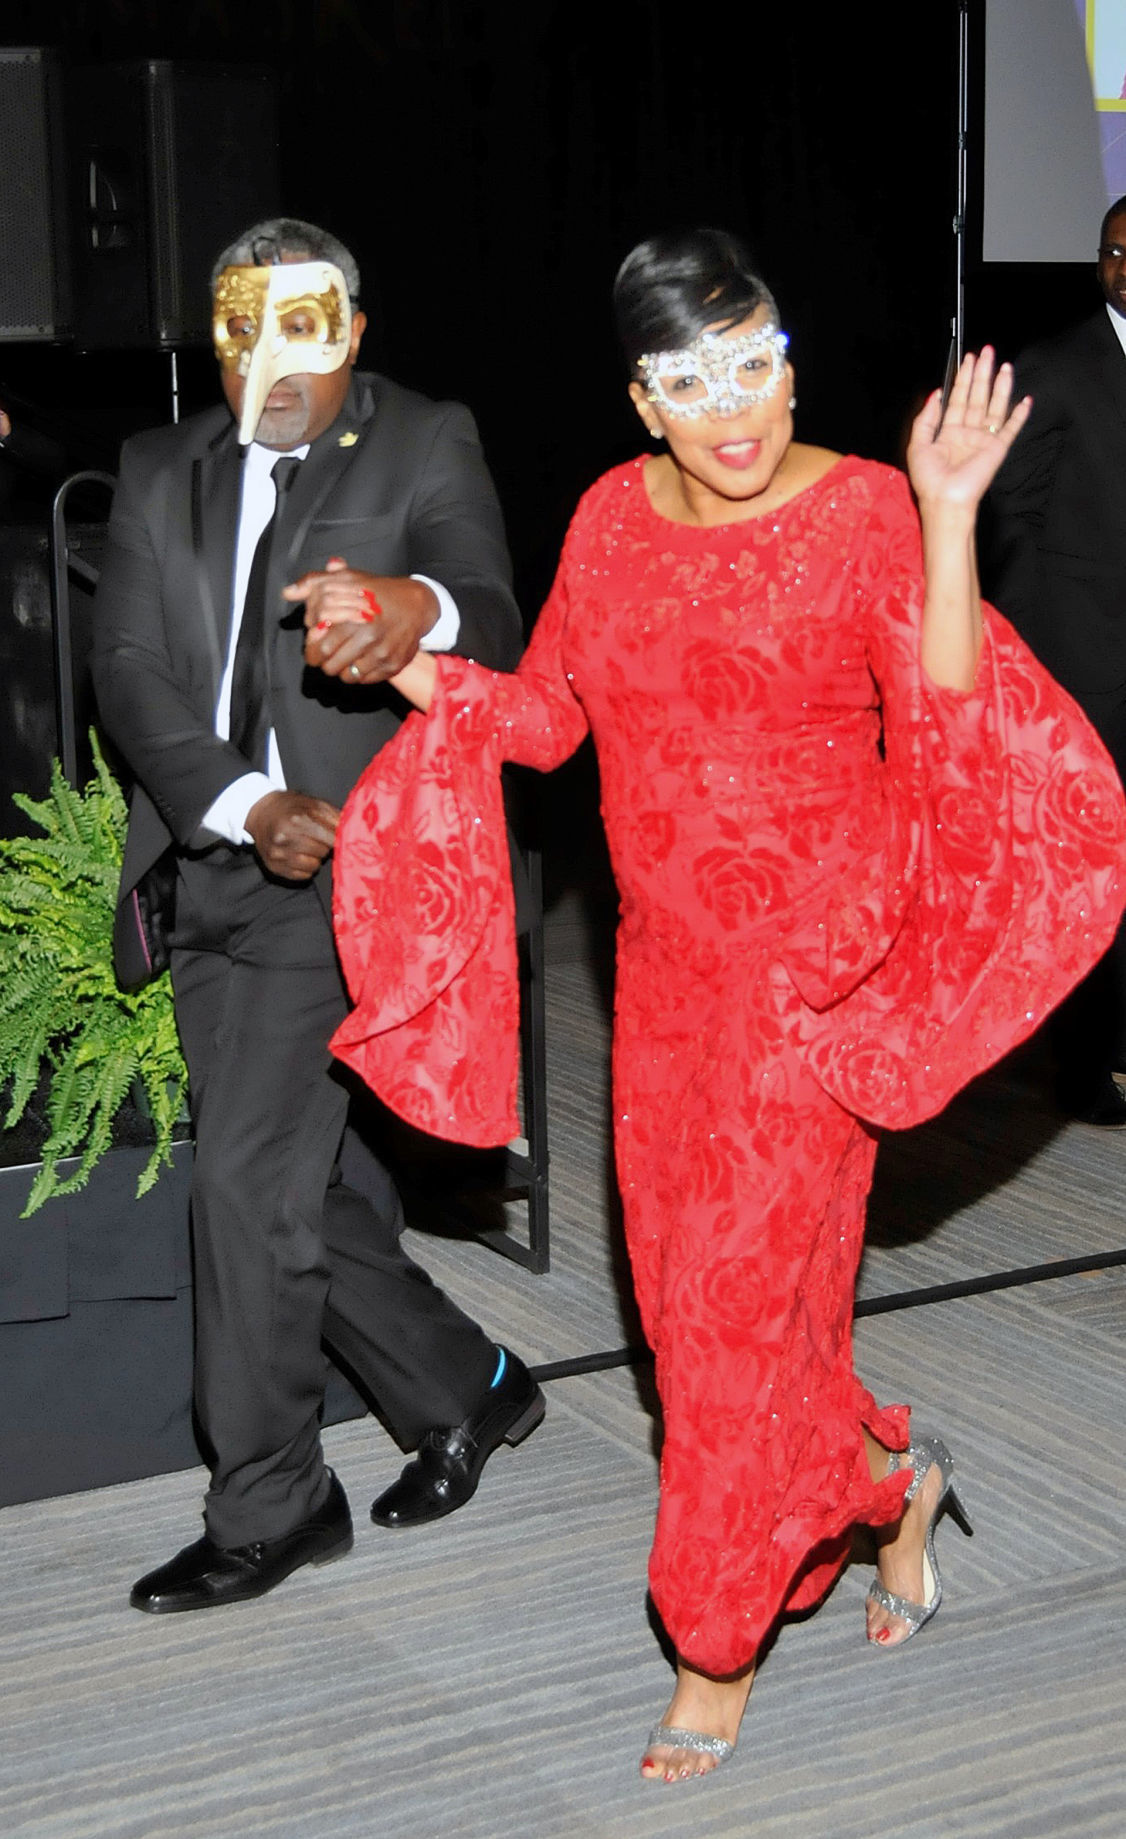 UNCF's annual masked ball is Dec. 6